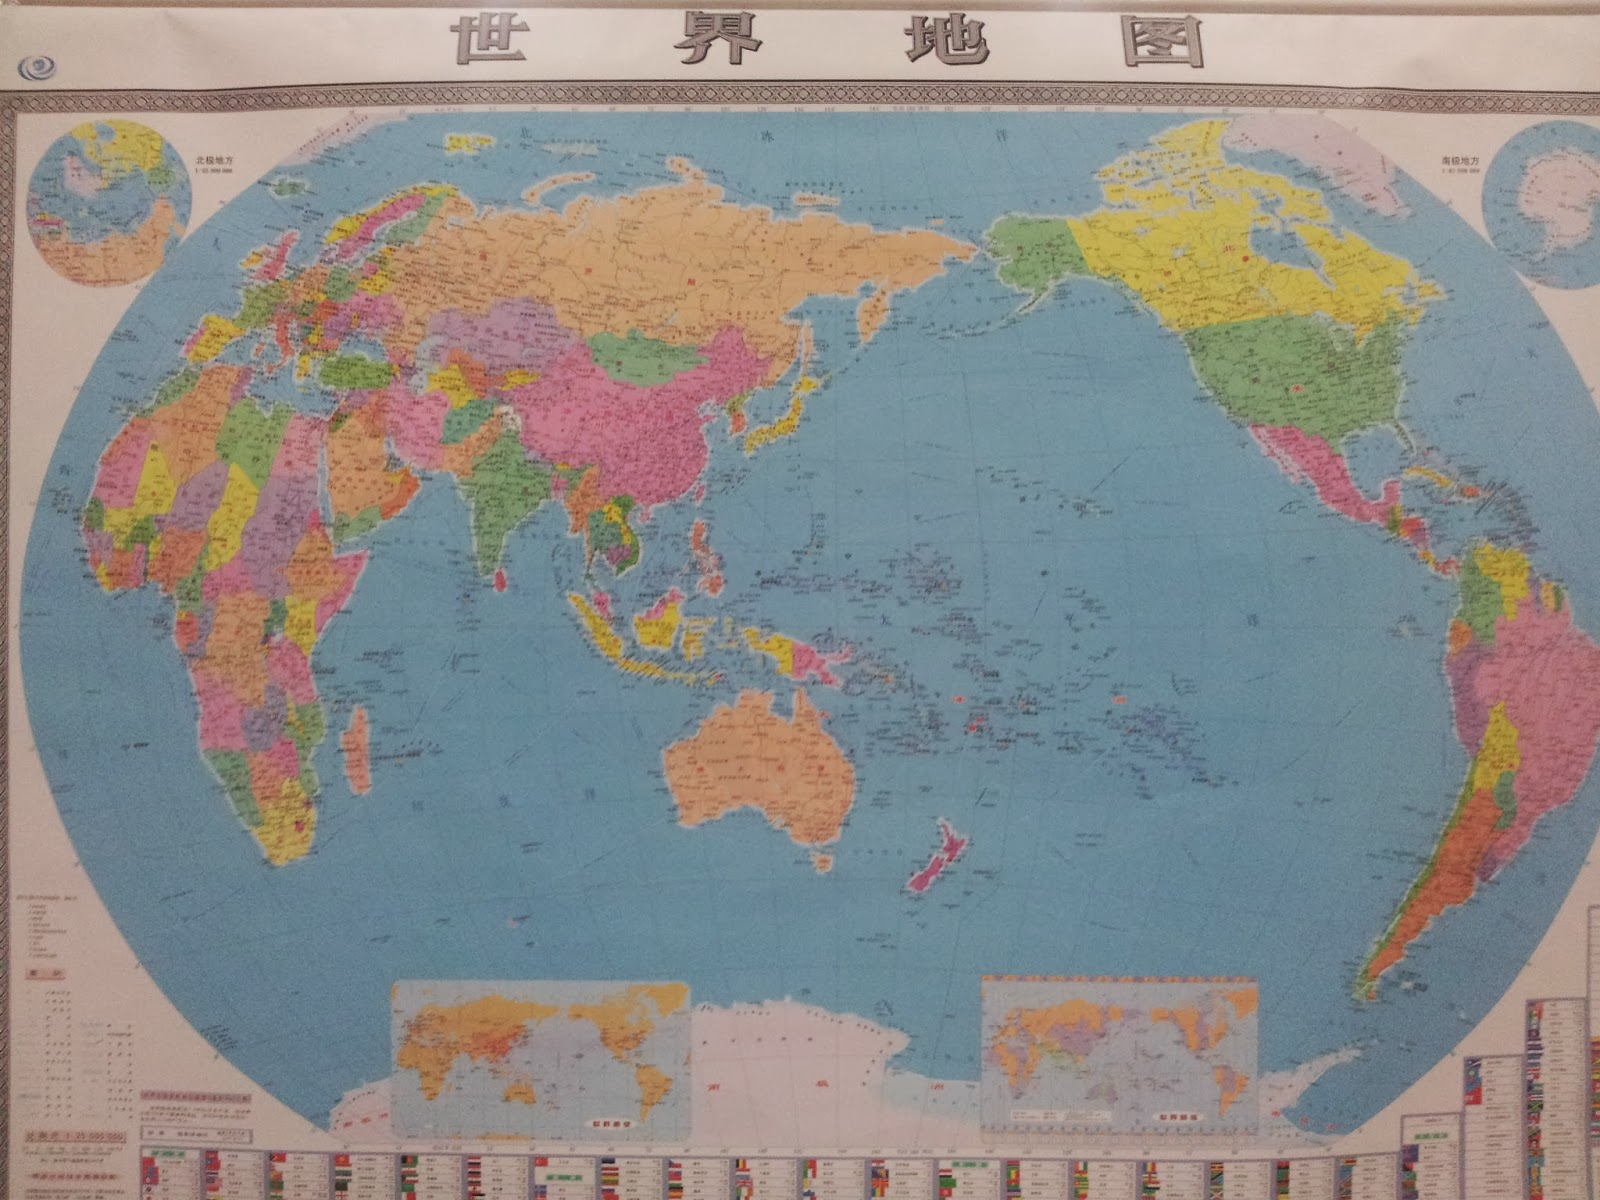 china has taken an internationally accepted idea the map of the world and changed it to satisfy the idea of sinocentrism or the belief that ancient china